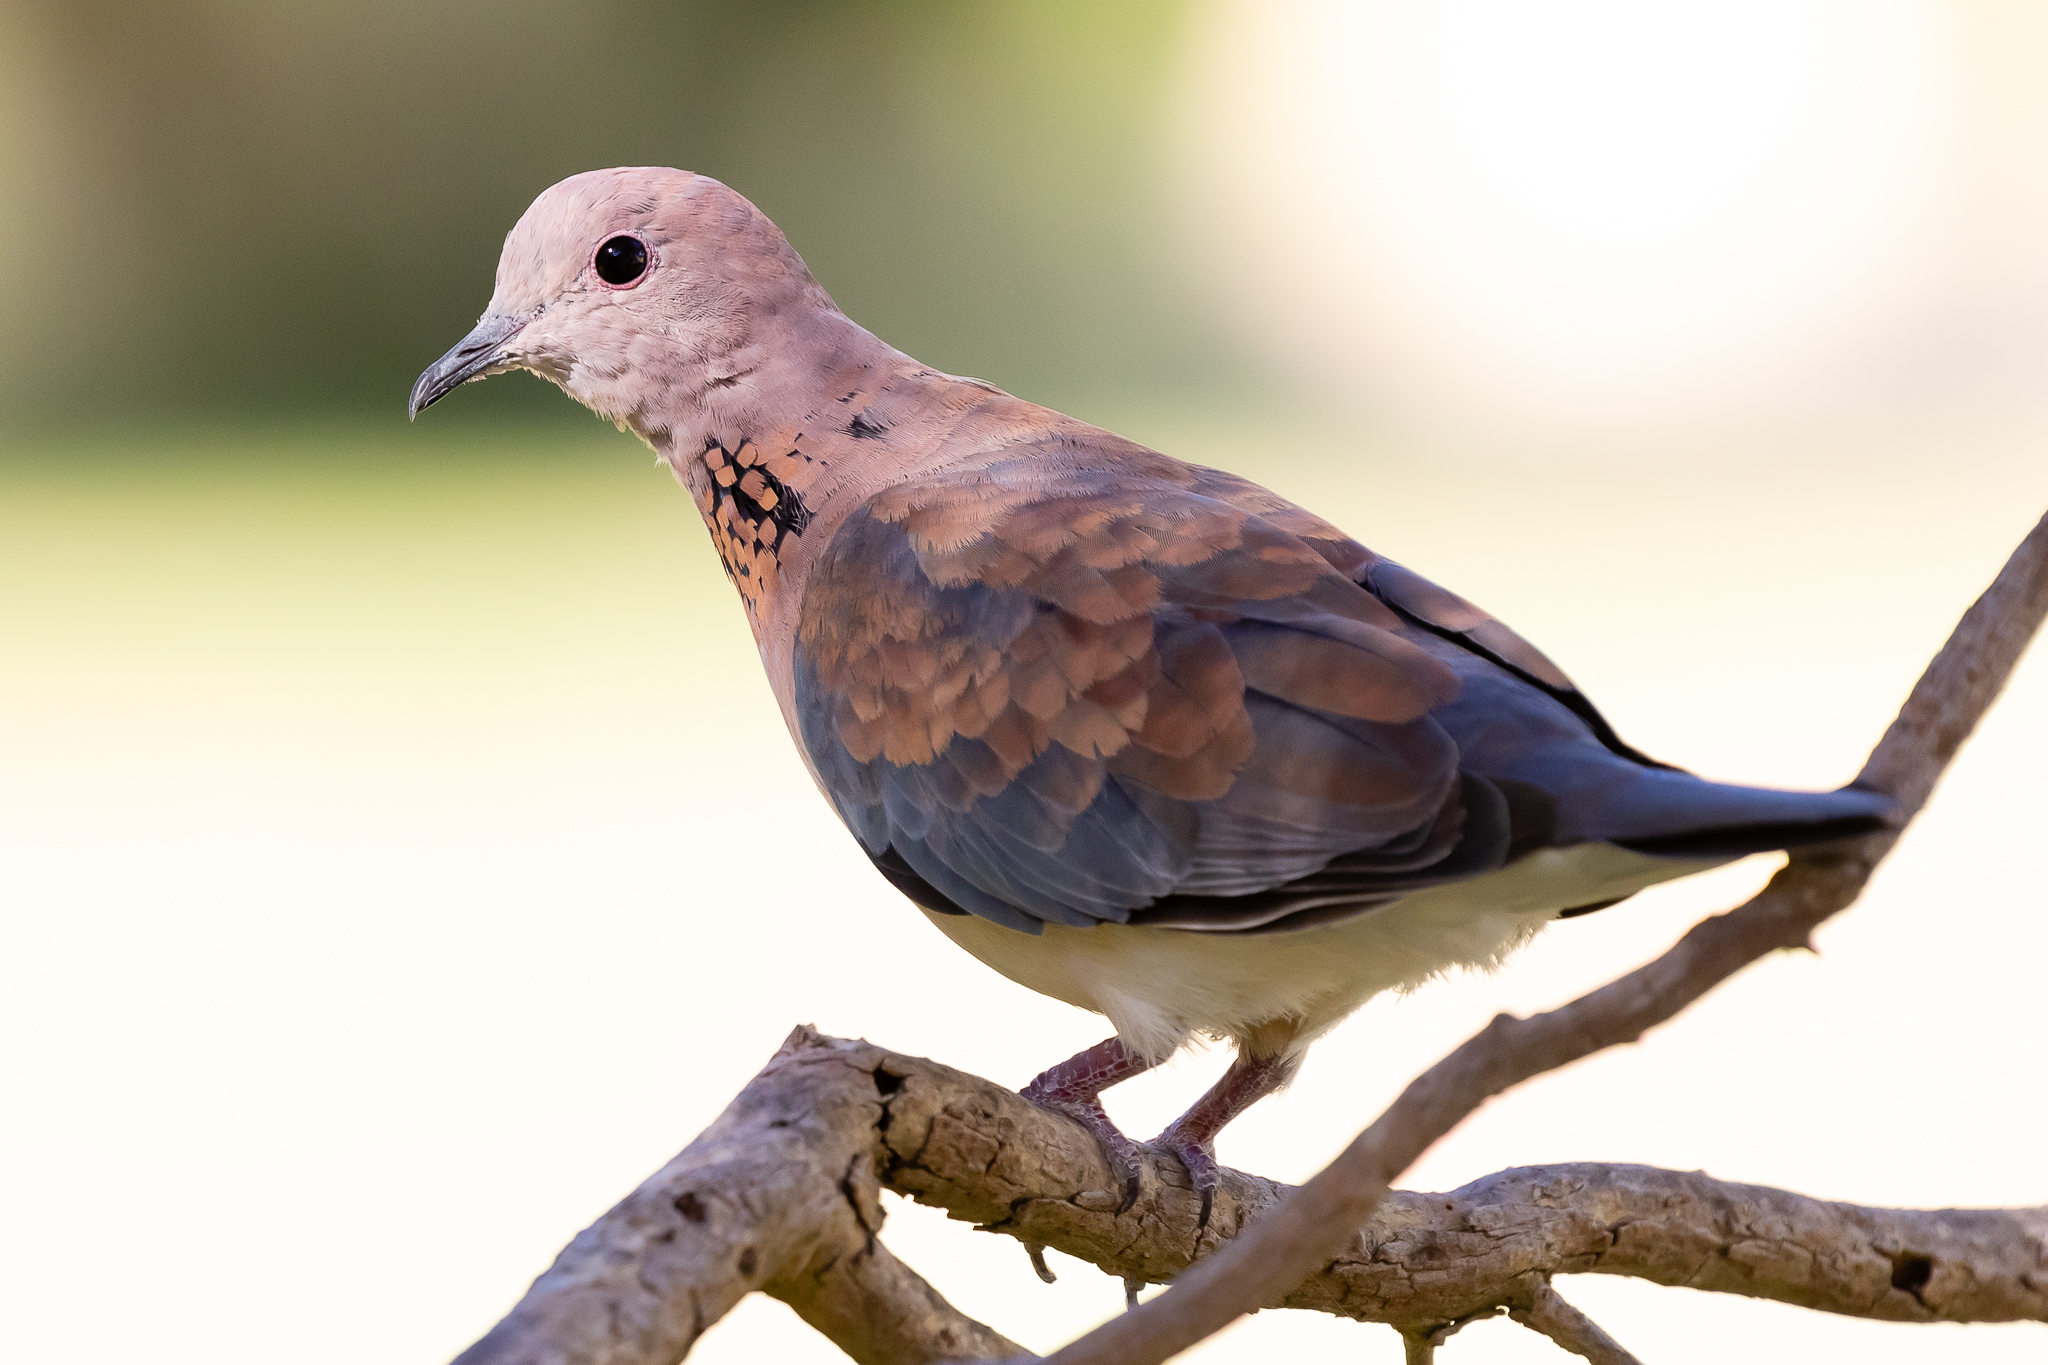 The Laughing Turtle-Dove was introduced to Perth from Africa in the nineteenth century. It is now well established across the South-West of Australia. Its name comes from its characteristic call.